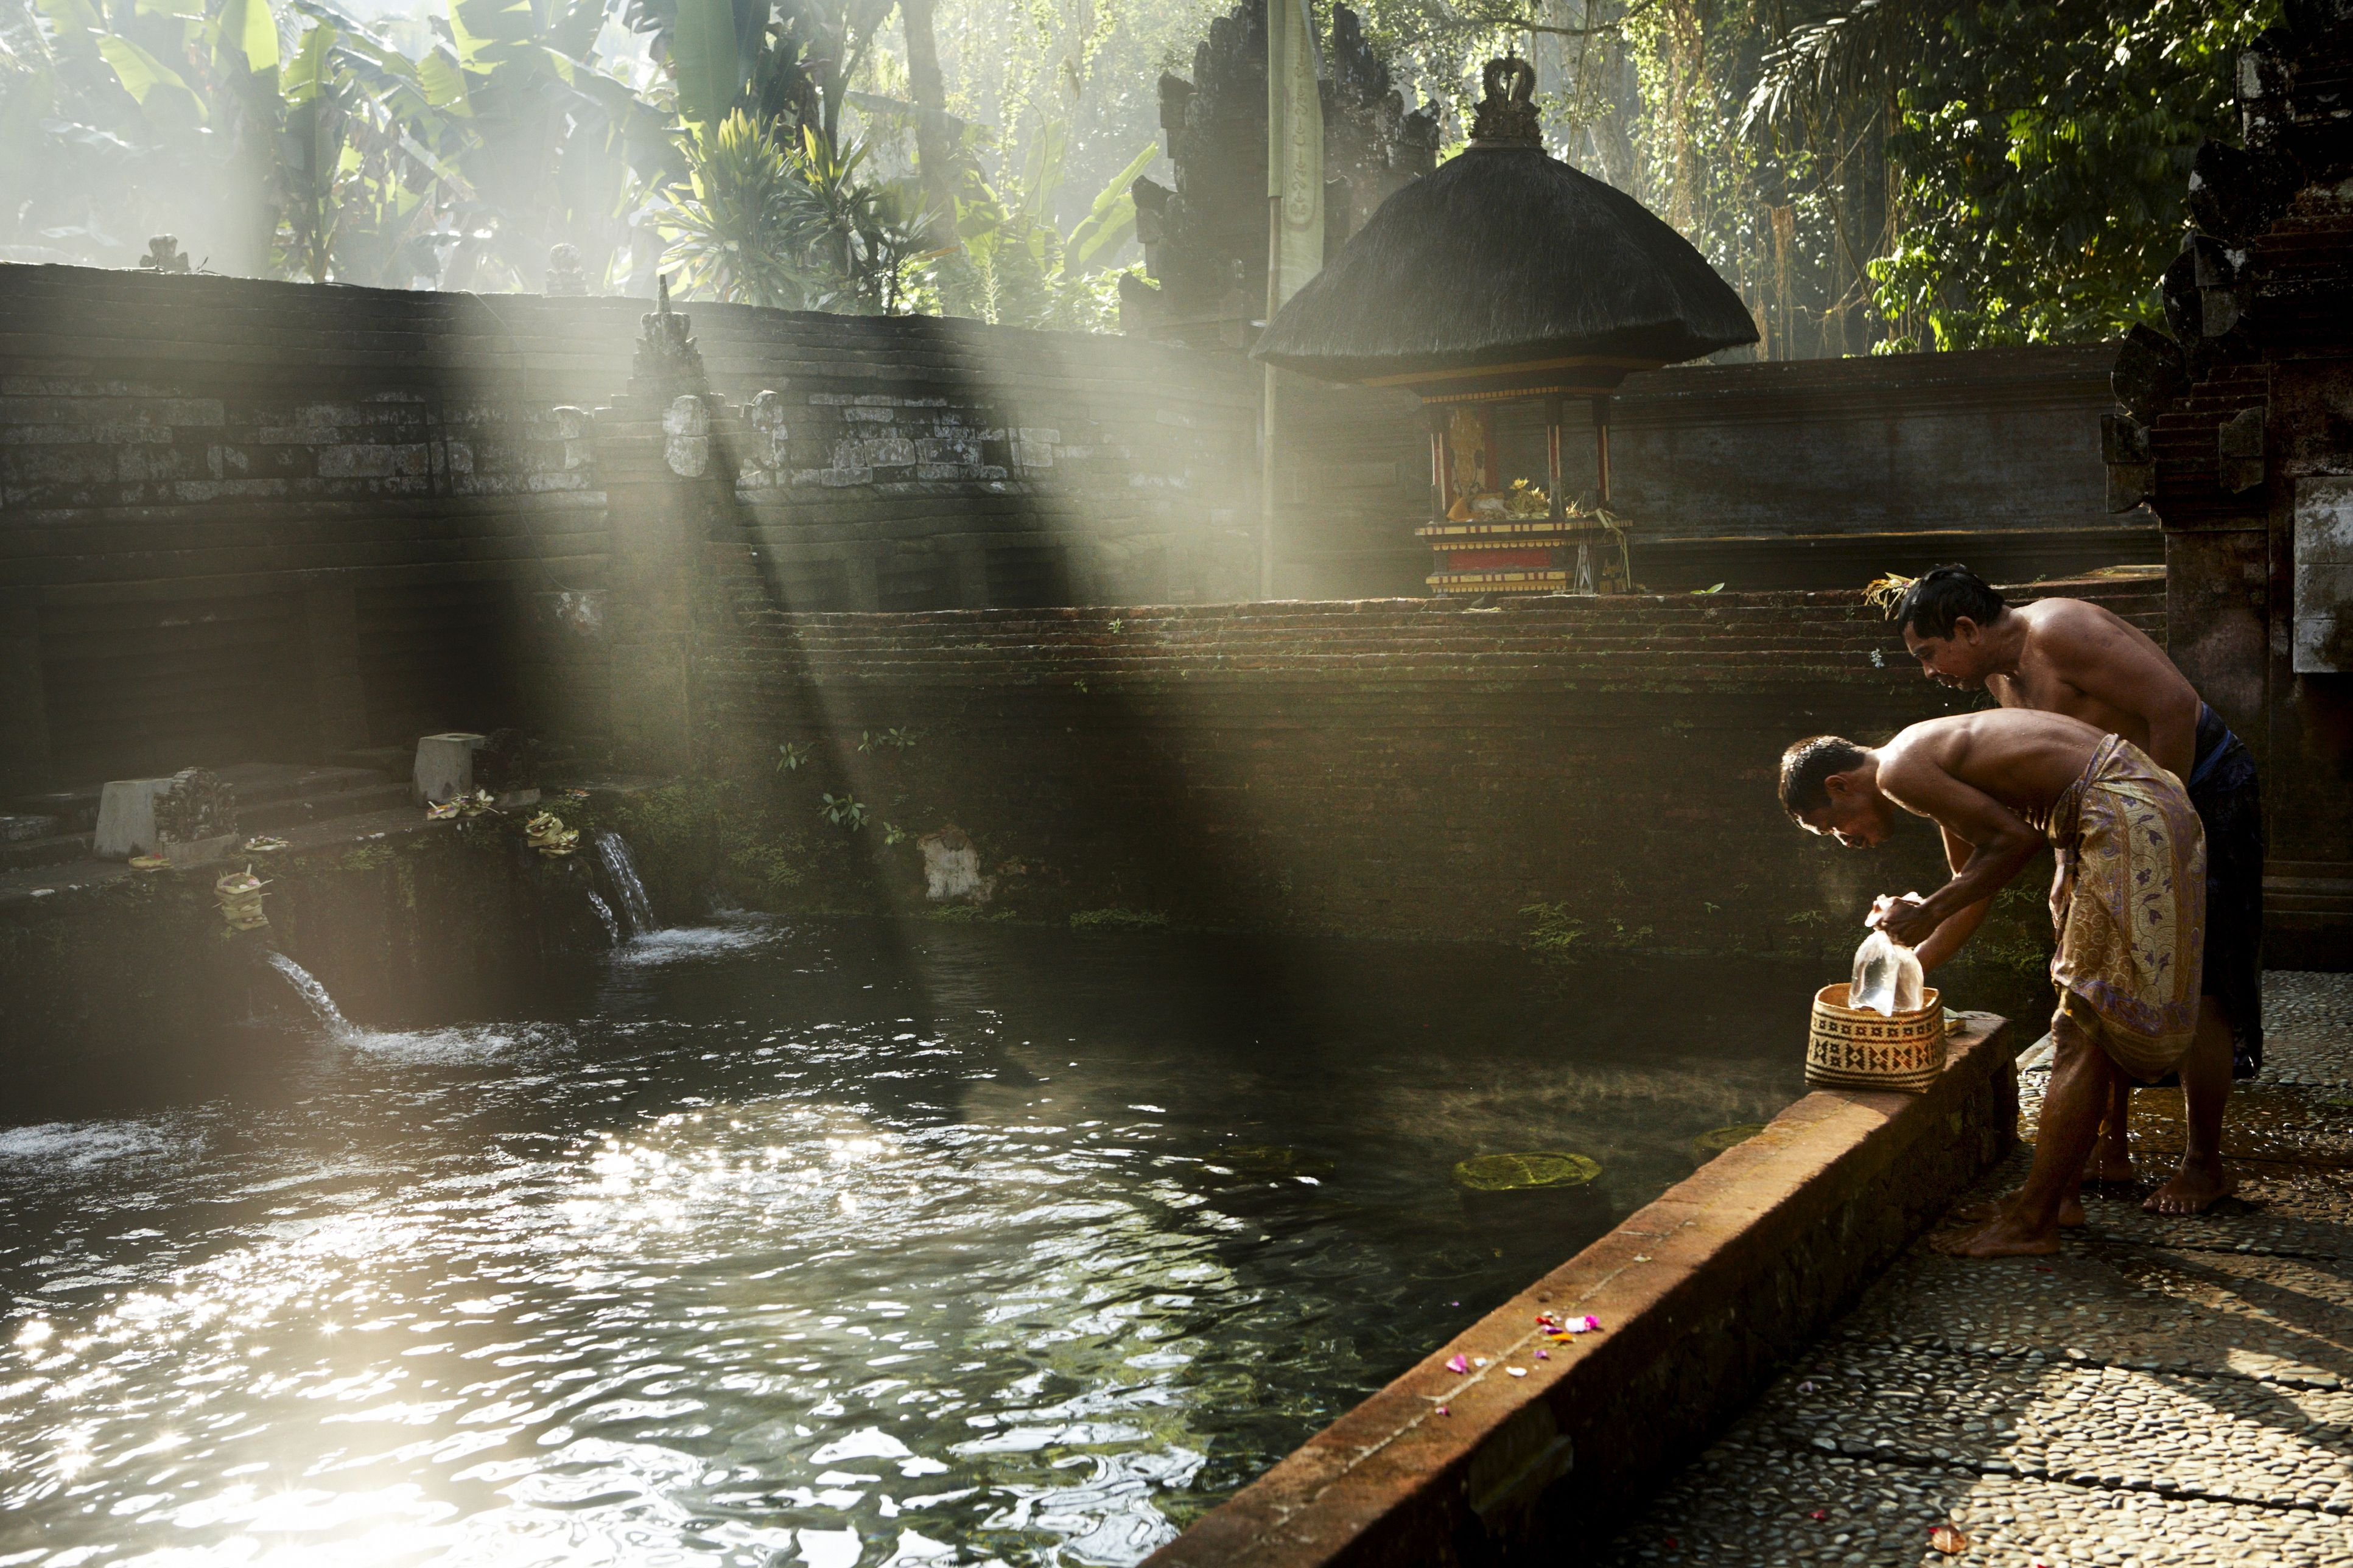 Temples In Bali That Should Not Be Missed